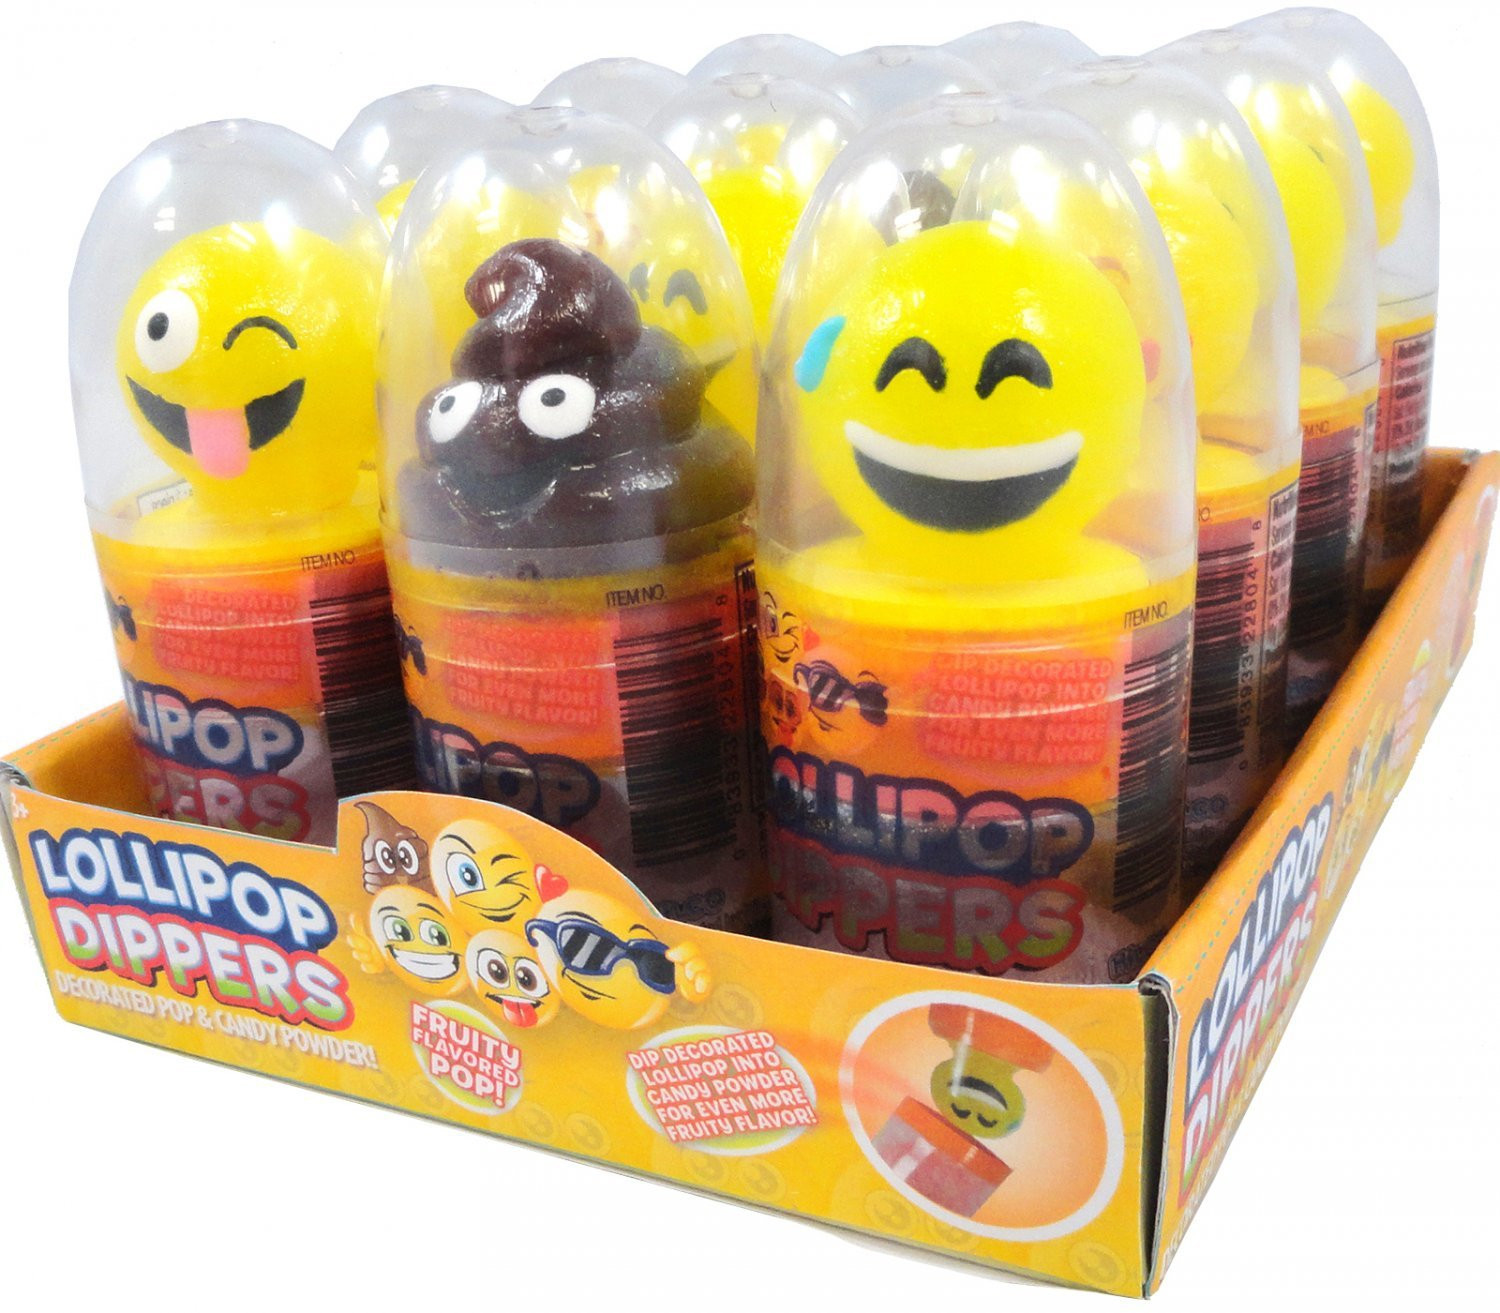 Hilco Expressions Lollipop Dippers